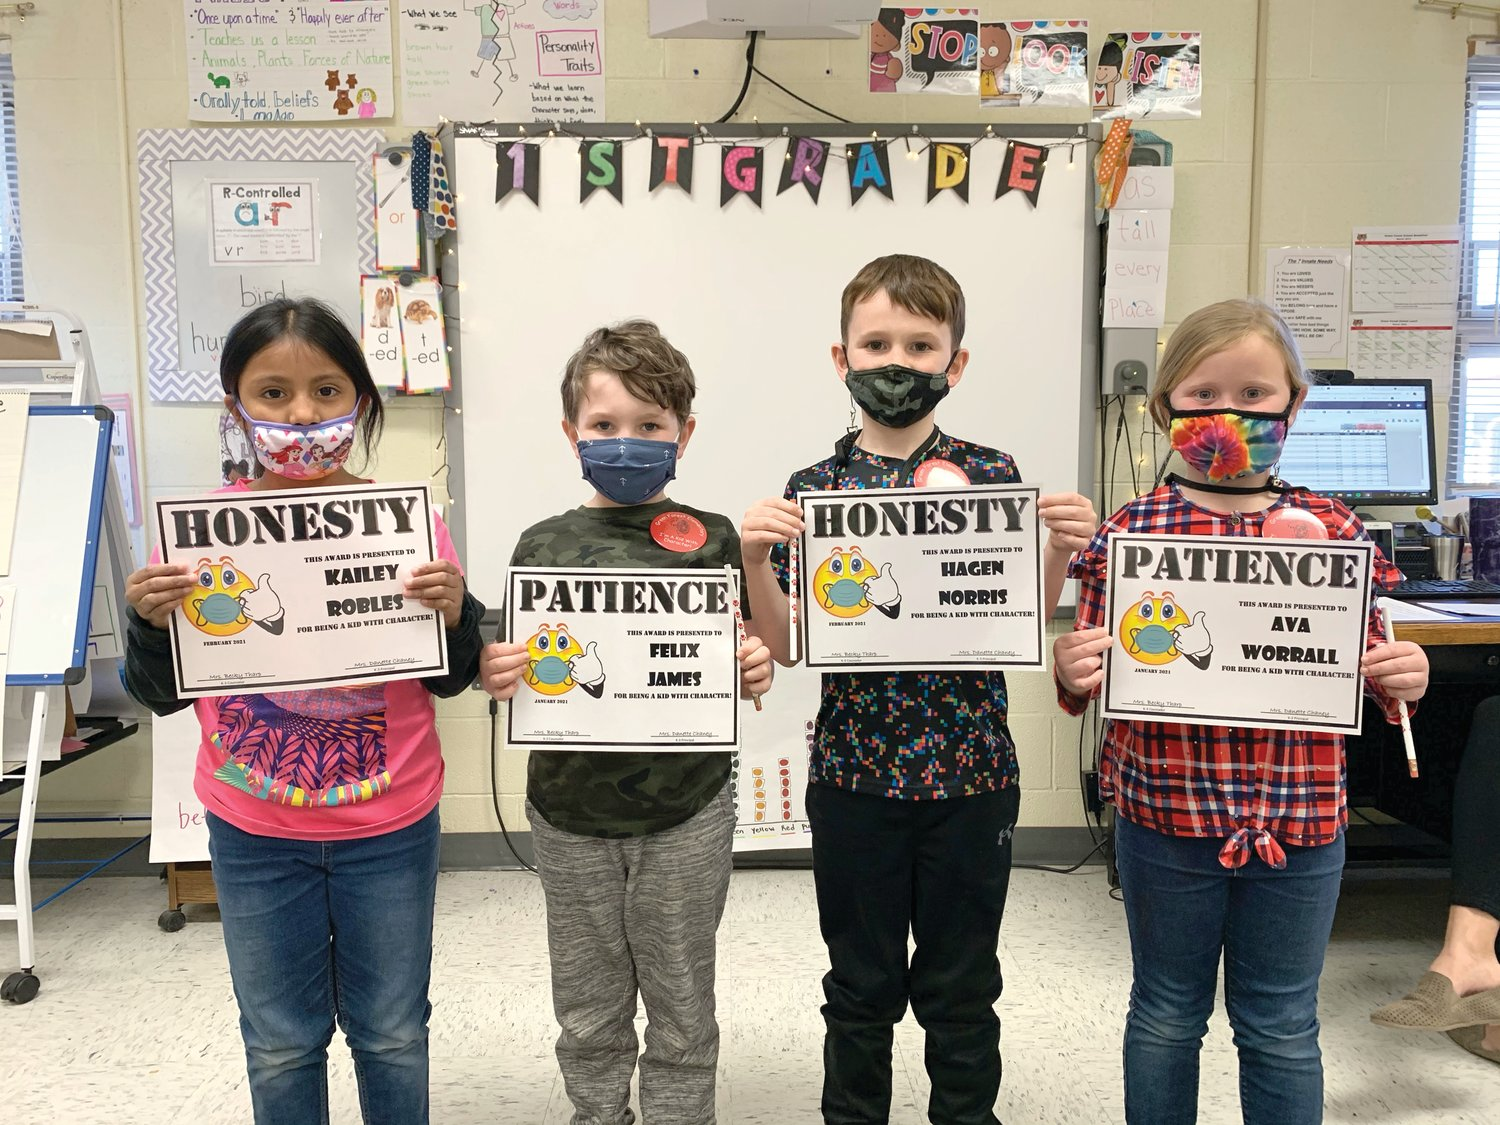 The Green Forest Kids with Character receiving awards are (from left) Kailey Robles, honesty; Felix James, patience; Hagen Norris, honesty and Ava Worrall, patience.